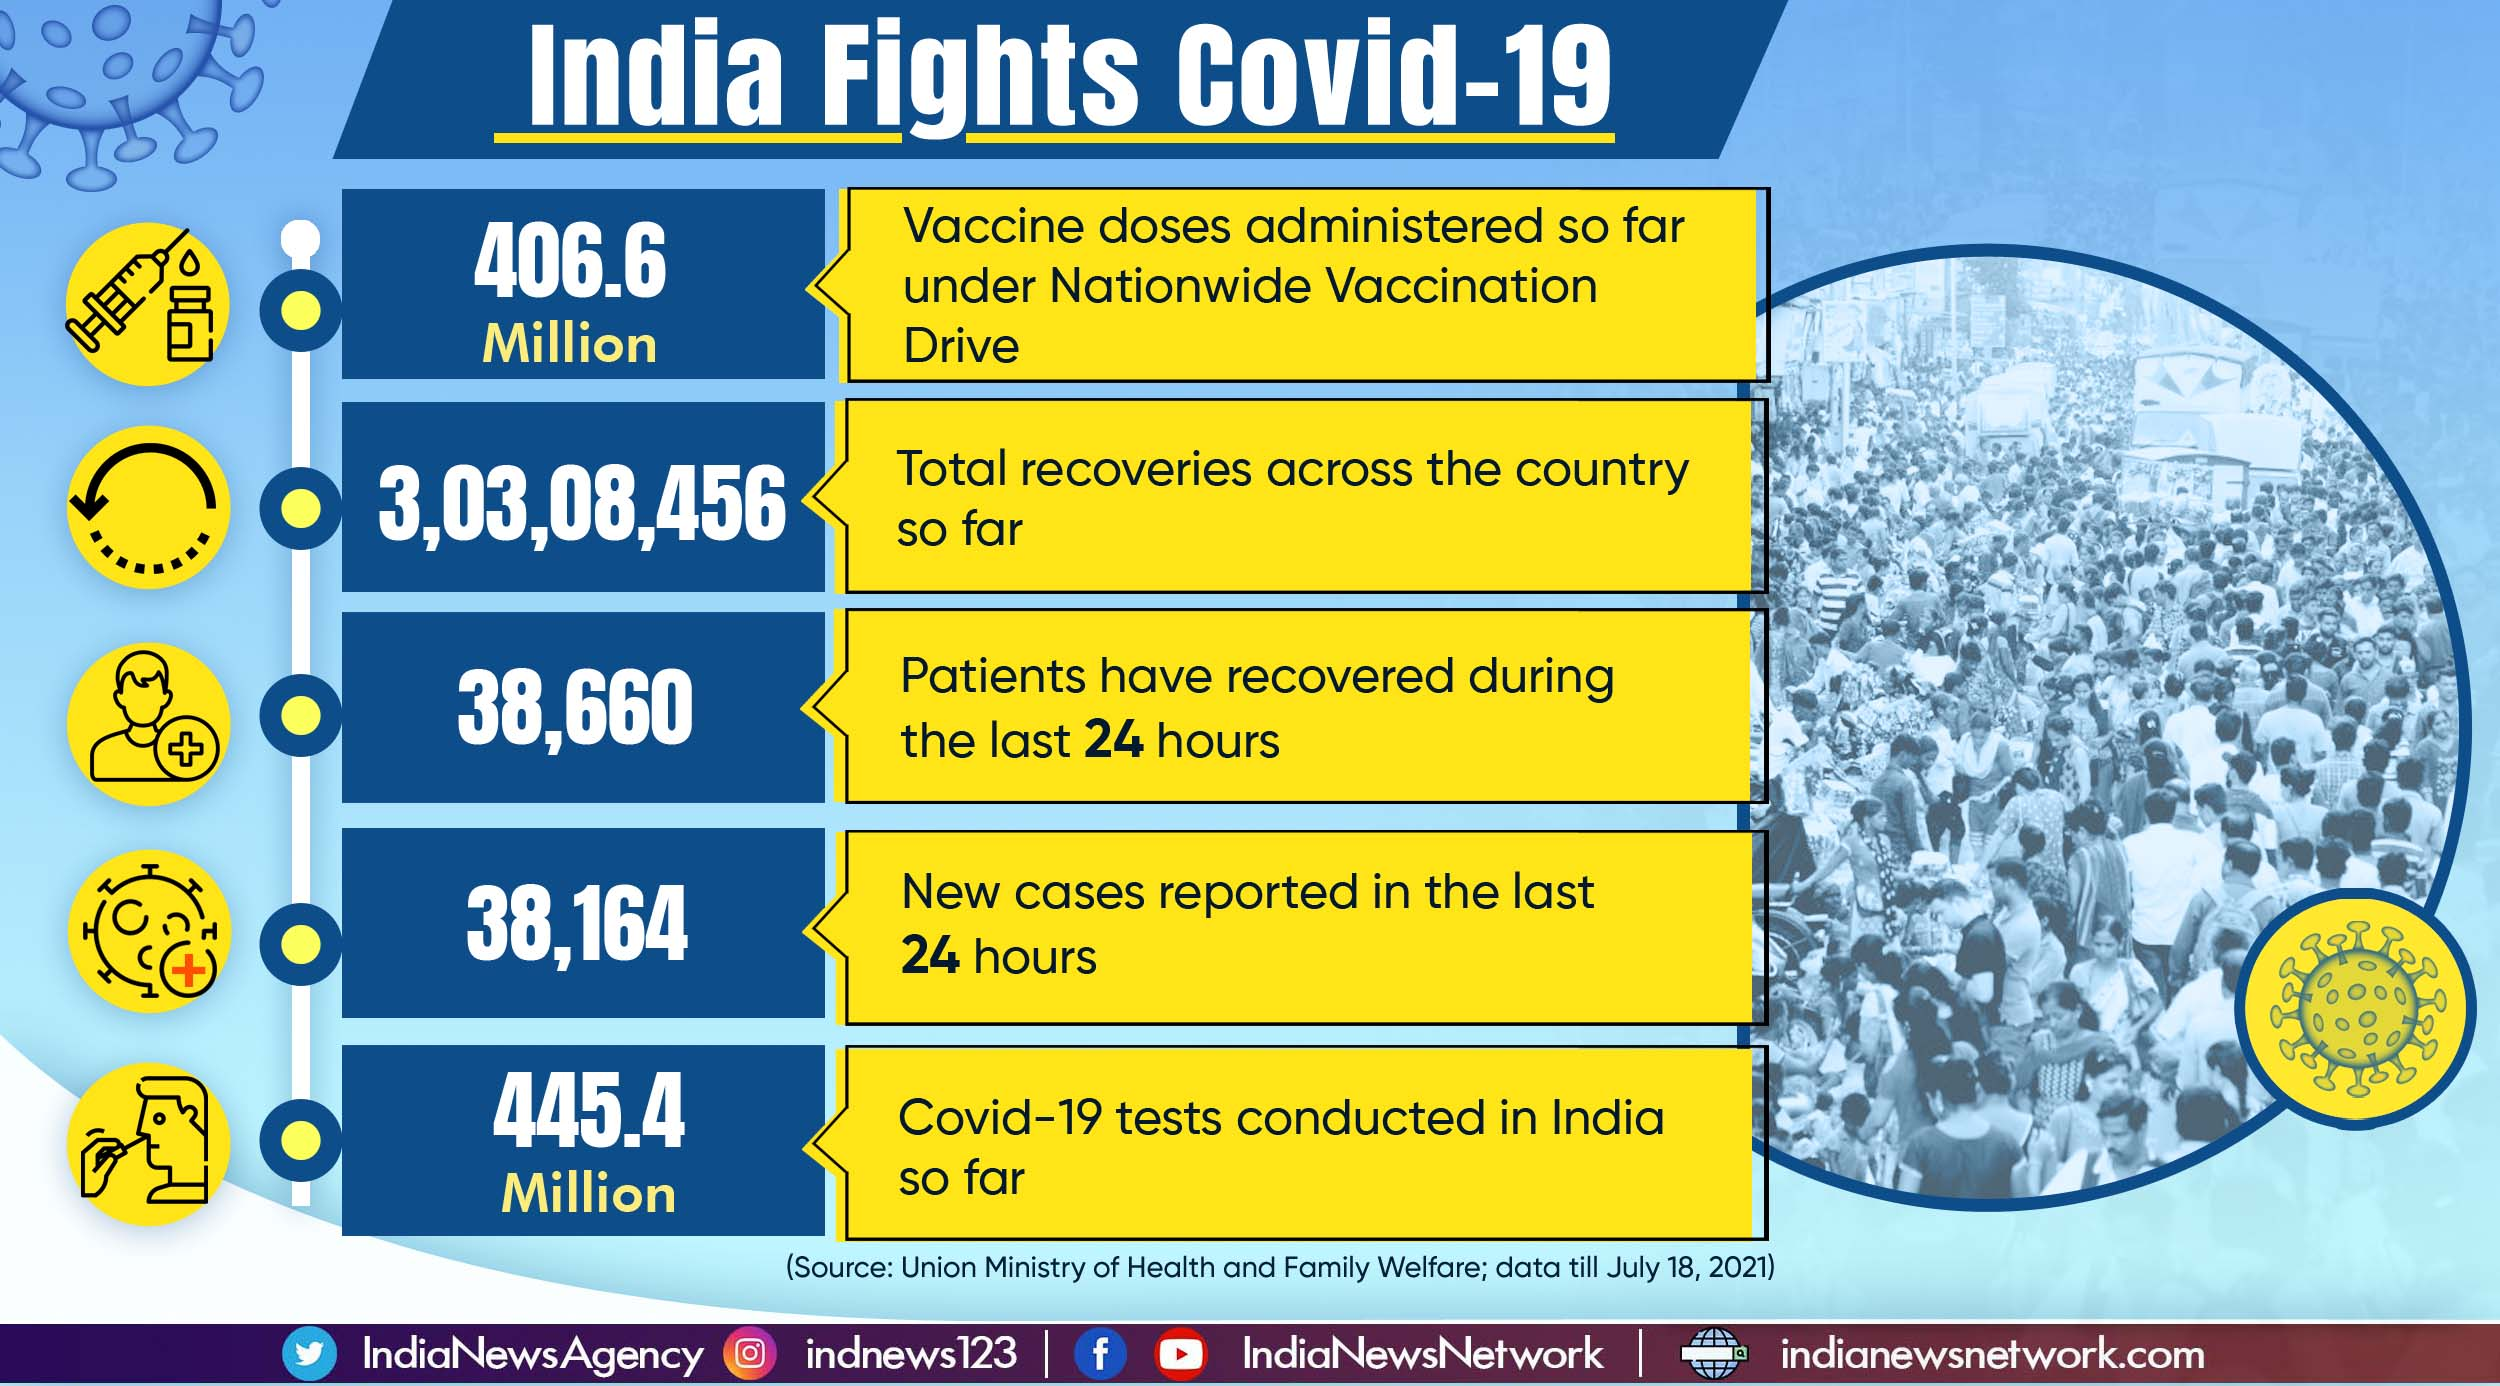 Over 406 million Covid-19 vaccine doses administered across India